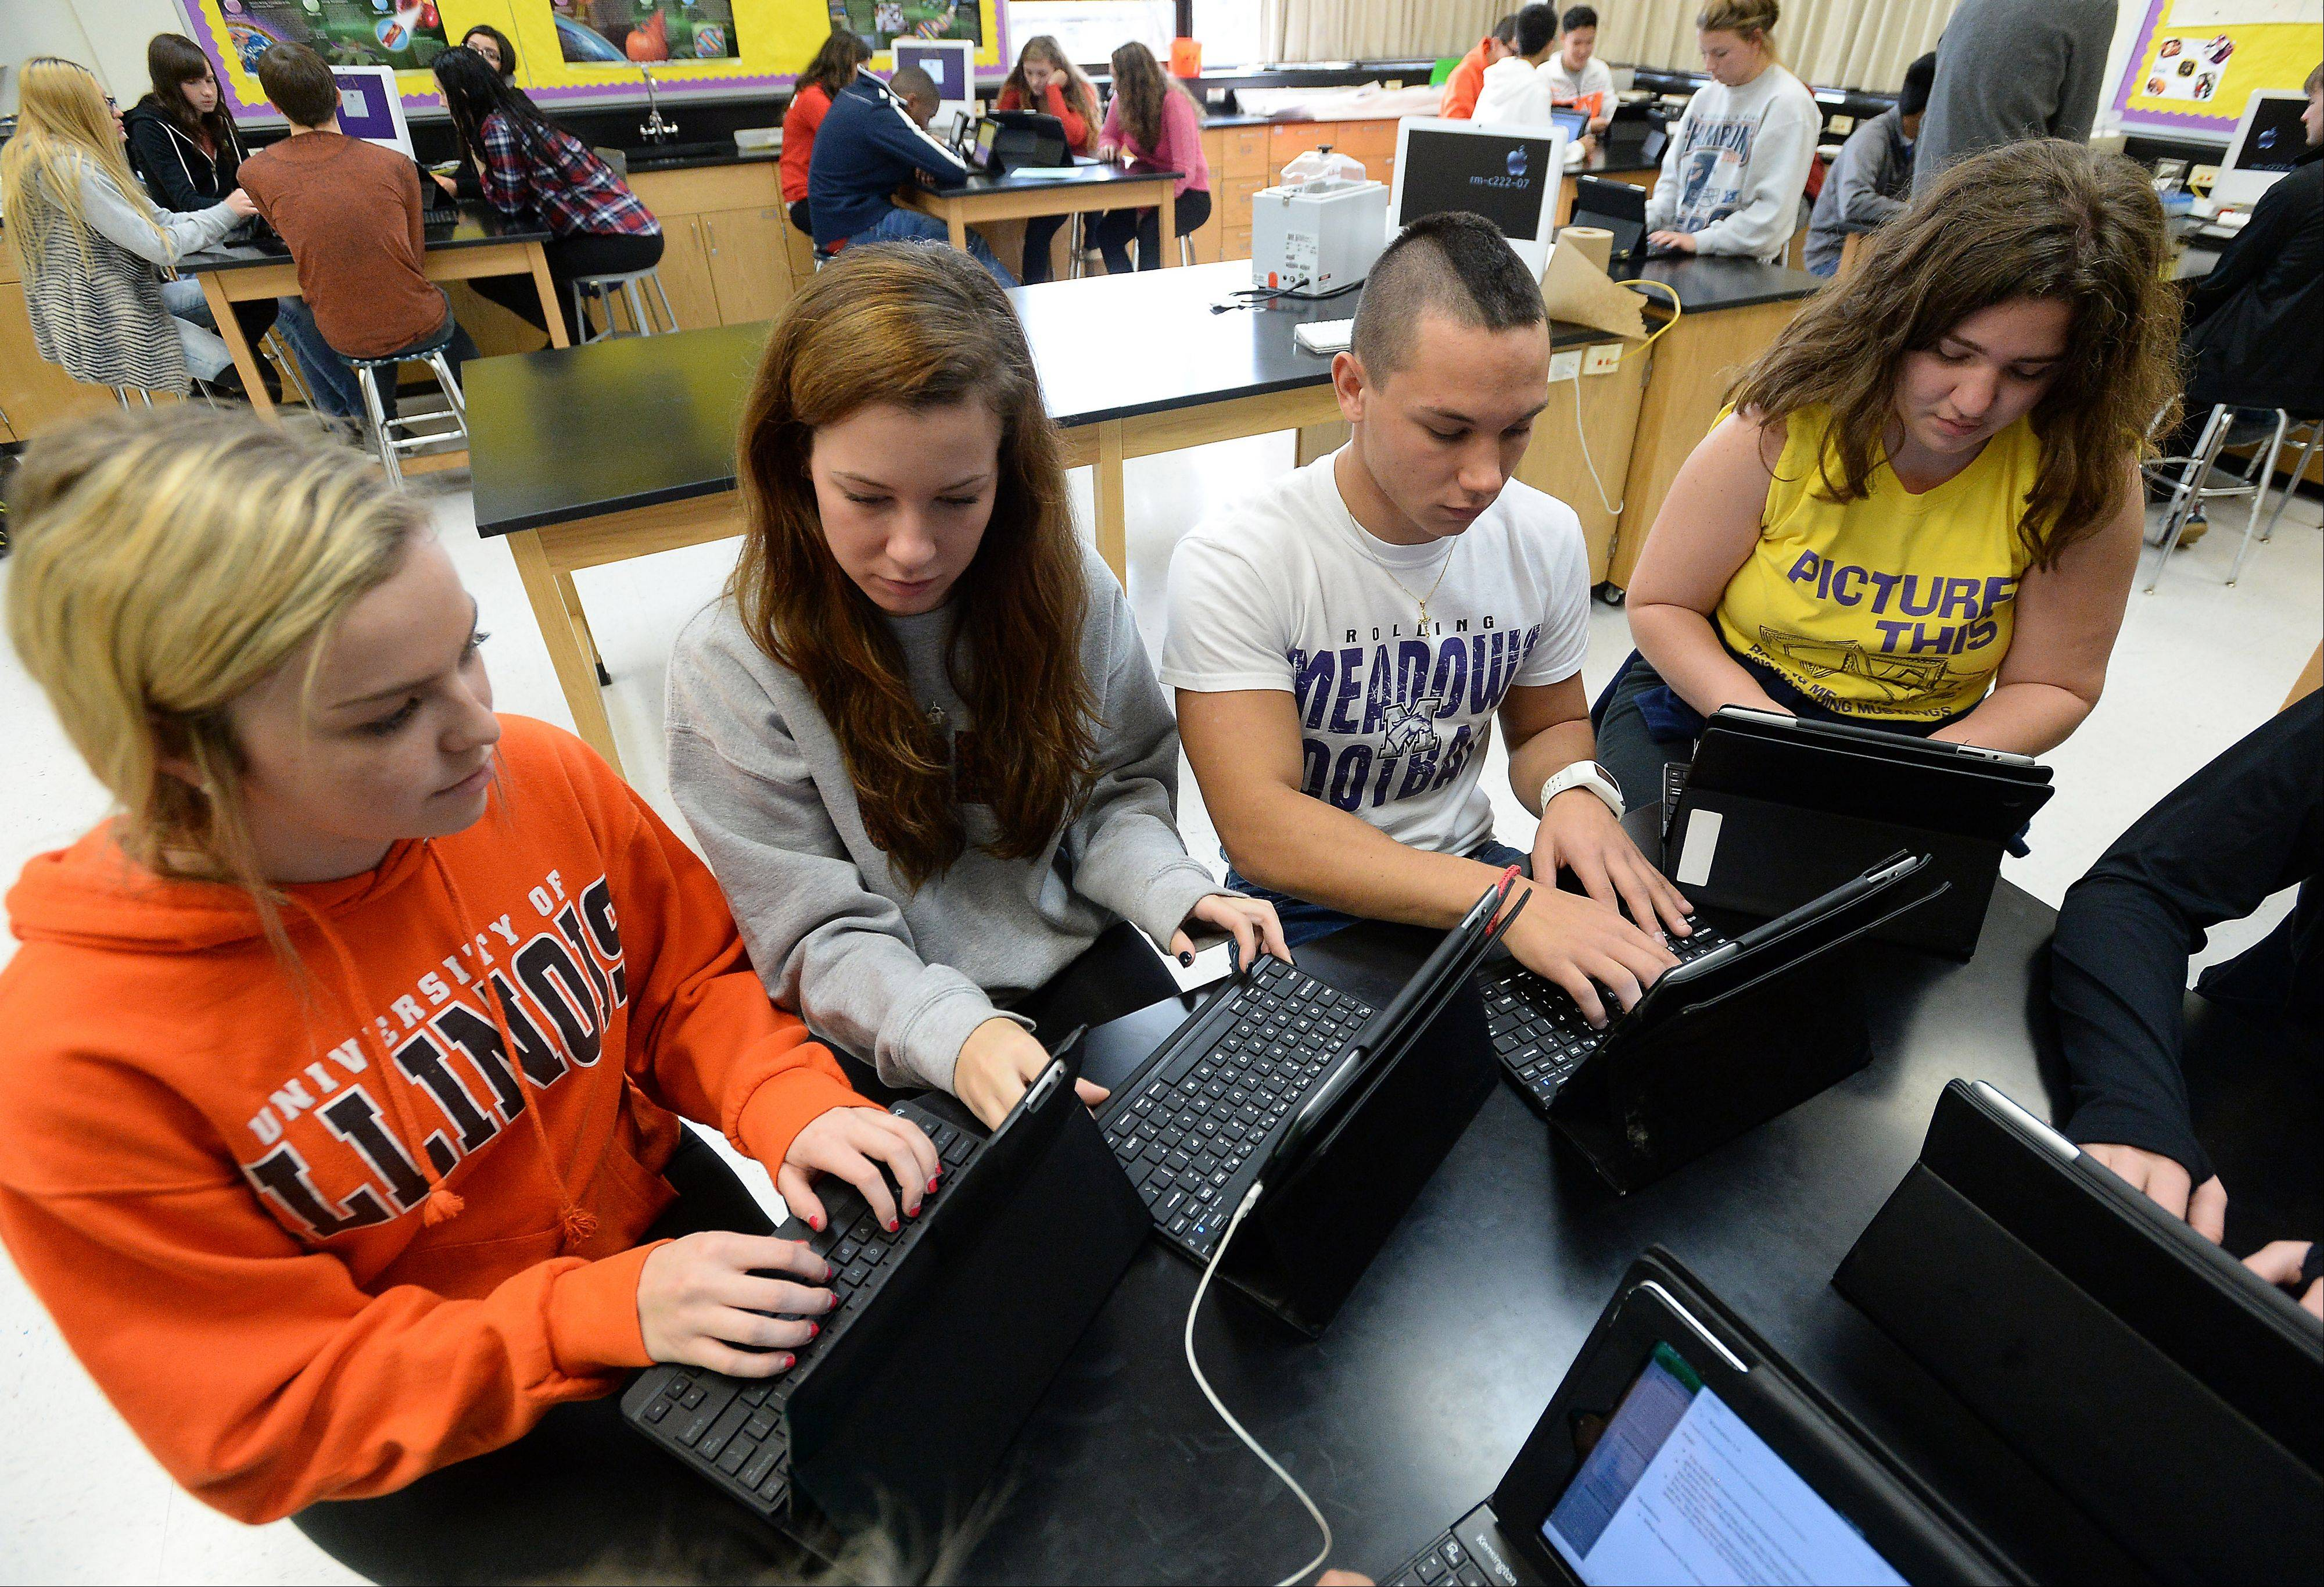 Advanced Placement biology students, from left, Shannon Gavin, Chloe Swindells, Will Hoppe and Desdemona Alvarez use iPads to study evolution at Rolling Meadows High School. Rolling Meadows is among high schools showing increases in the number of students who meet or exceed state testing standards.